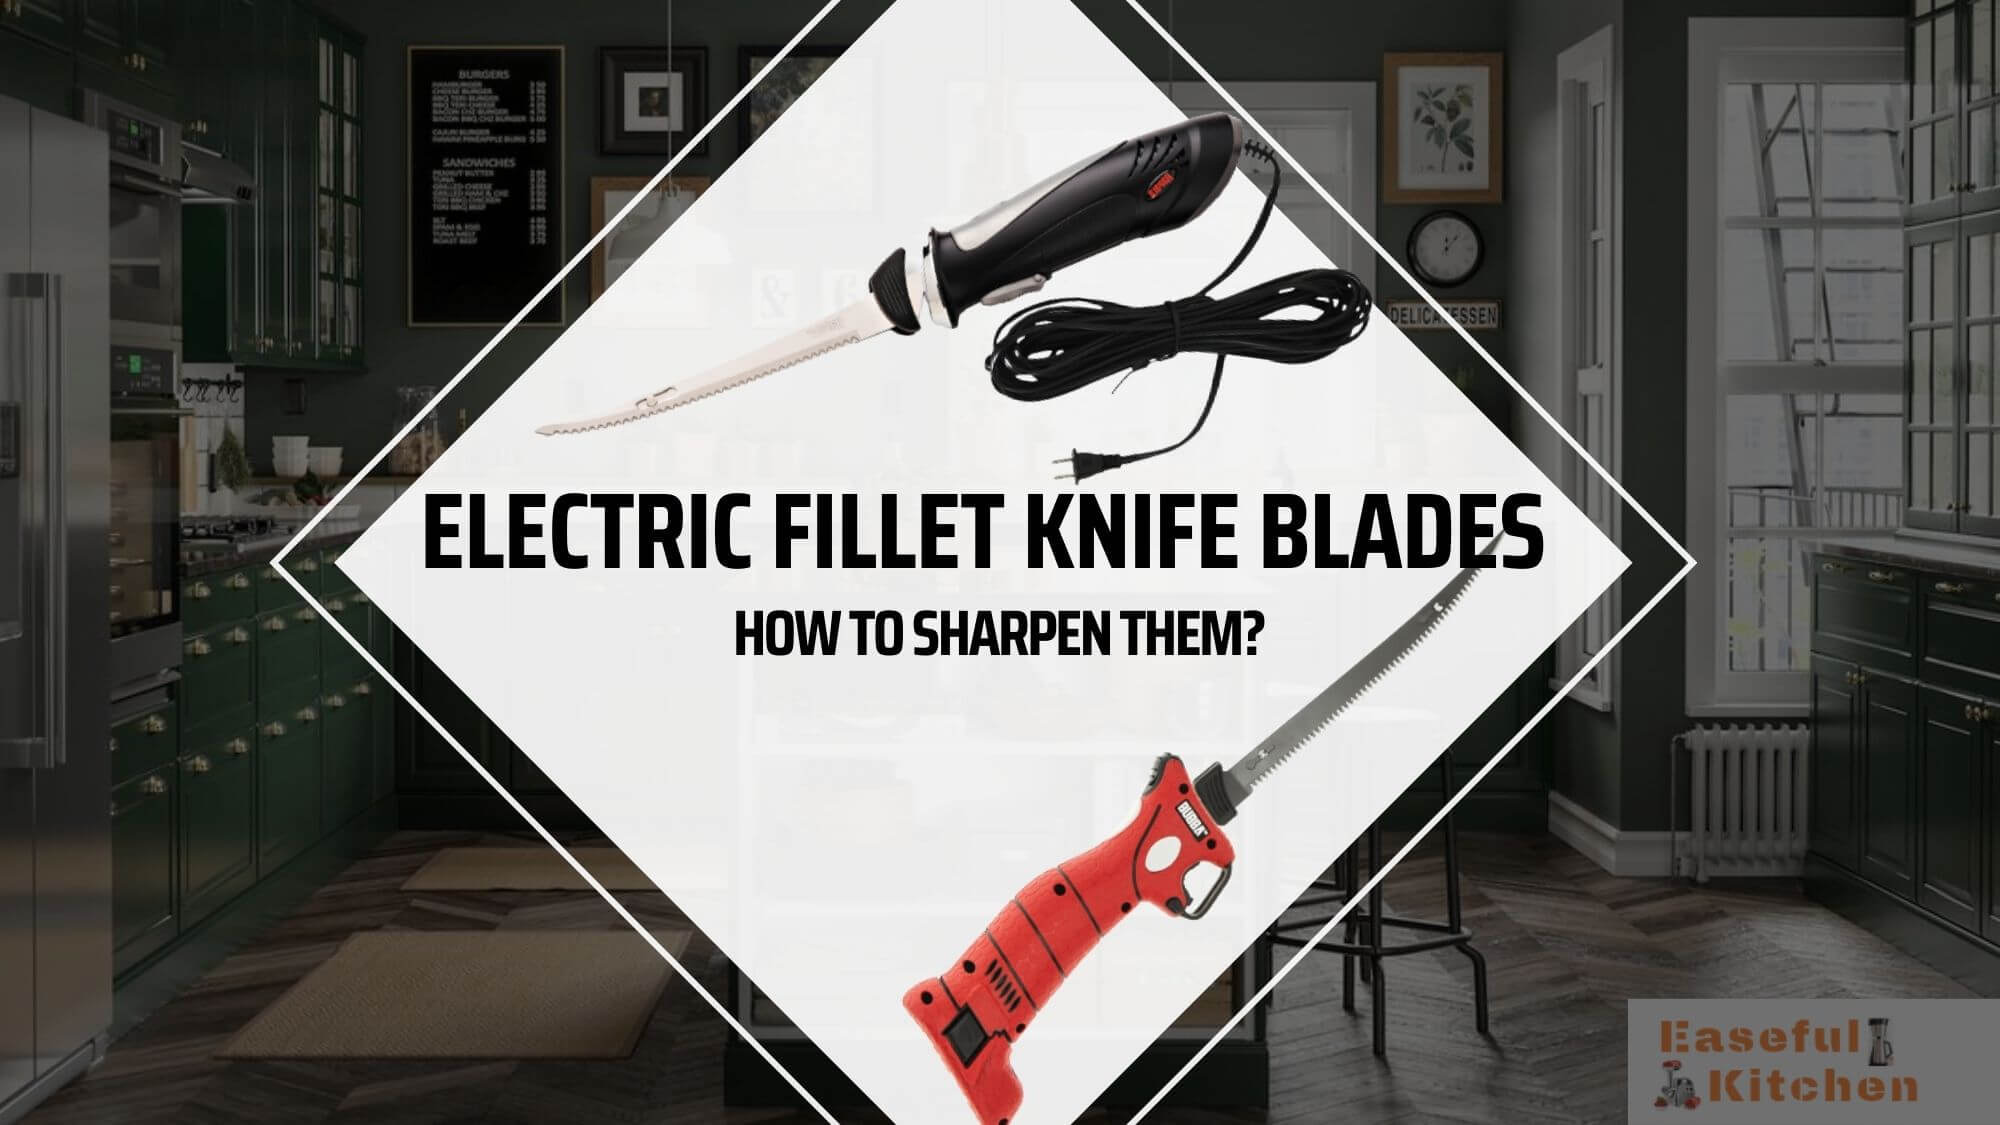 How to Sharpen Electric Fillet Knife Blades